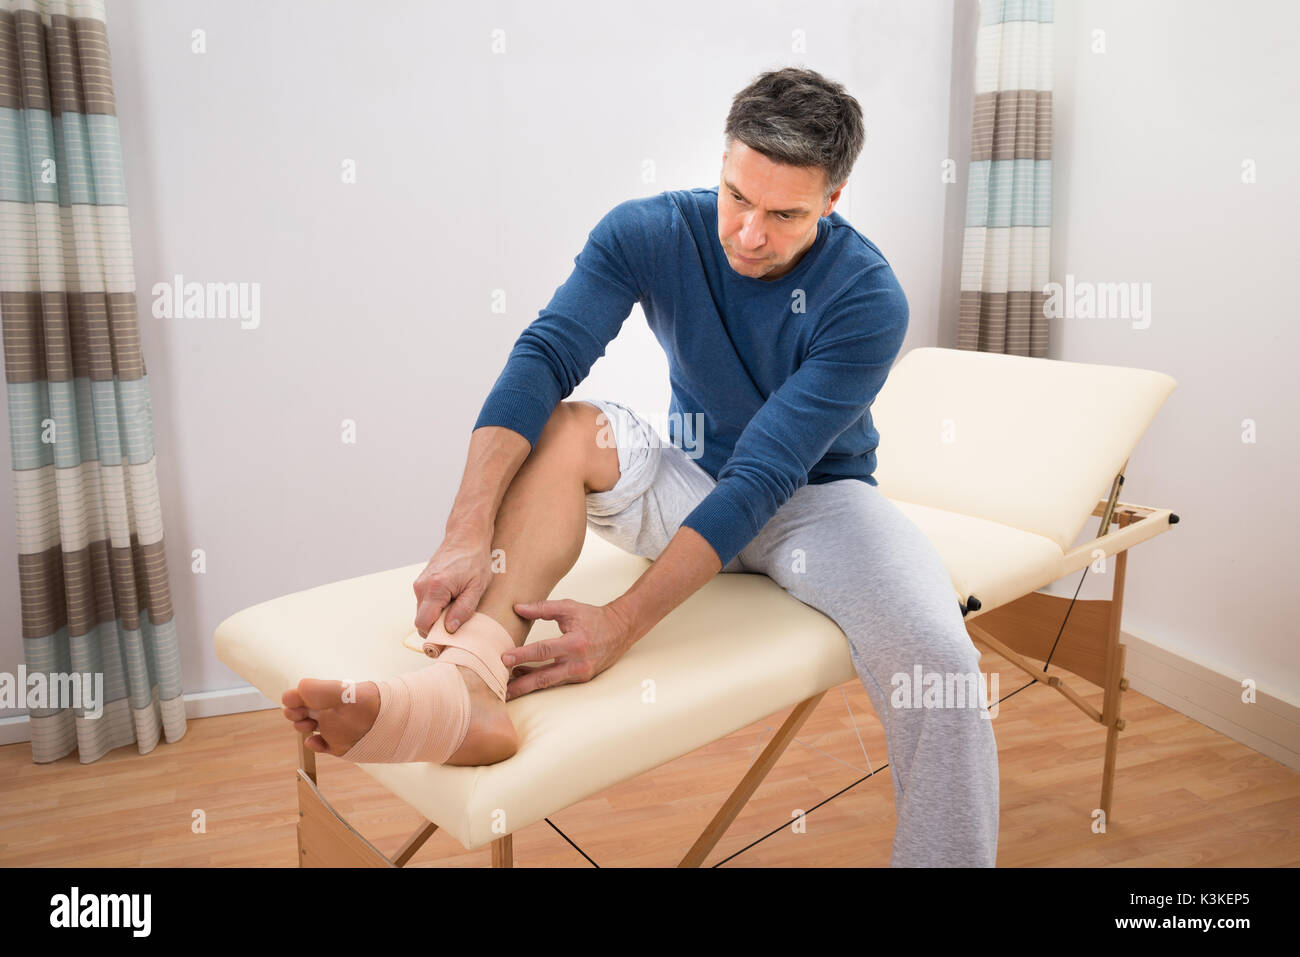 Man Sitting On Bed Typing Elastic Bandage To His Foot - Stock Image